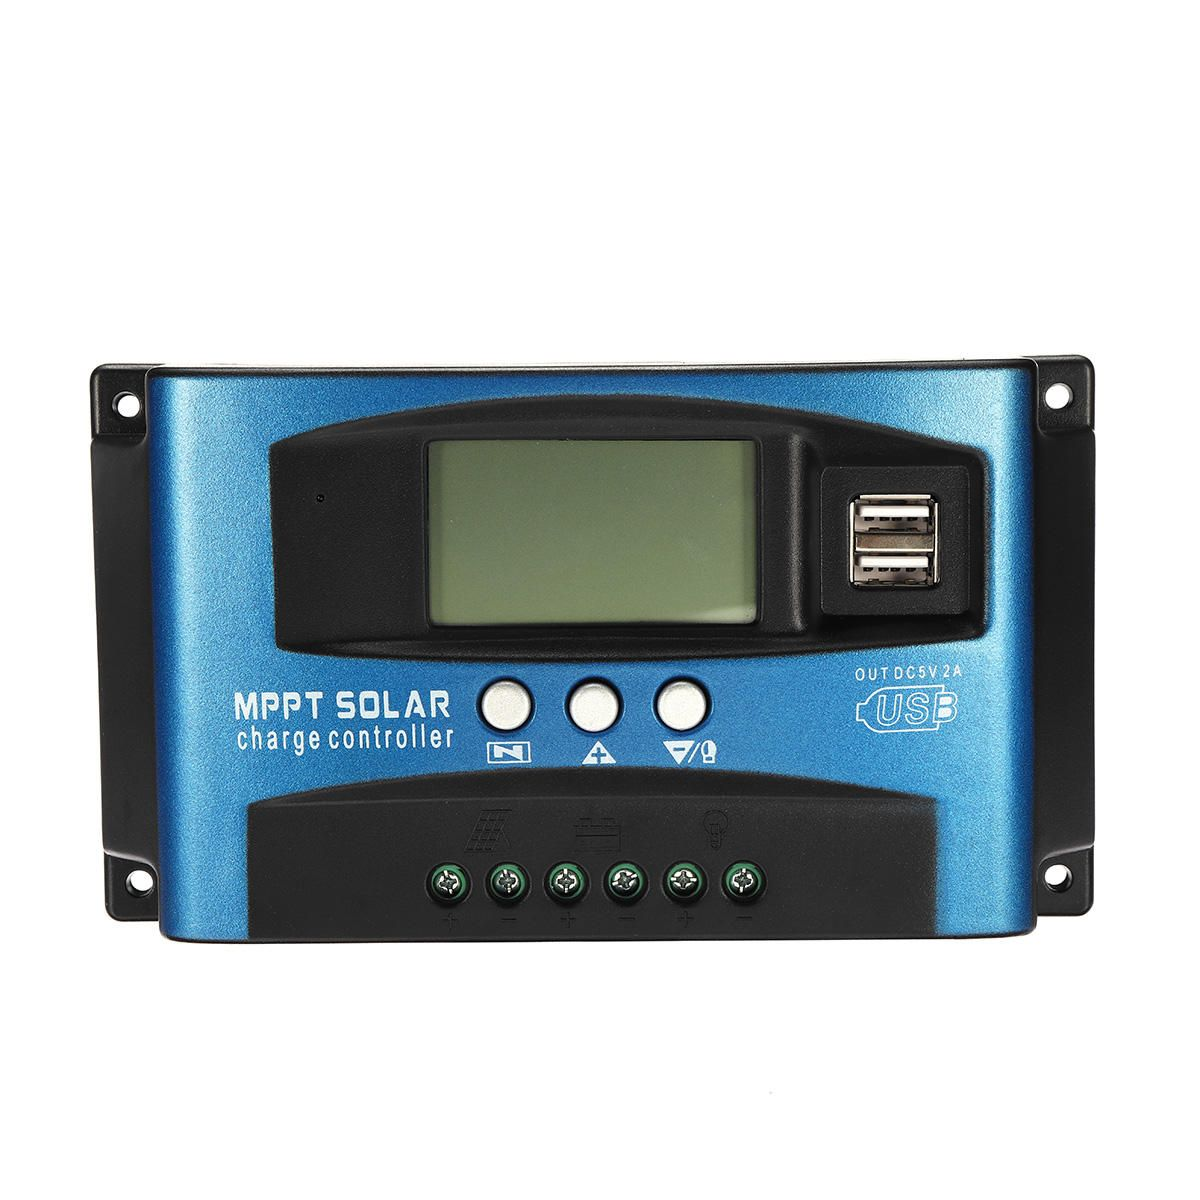 30 40 50 60 100a Mppt Solar Controller Lcd Solar Charge Controller Accuracy Dual Usb Solar Panel Battery Regulator Electrical Equipment Supplies From Industri Solar Solar Panel Battery Solar Panels